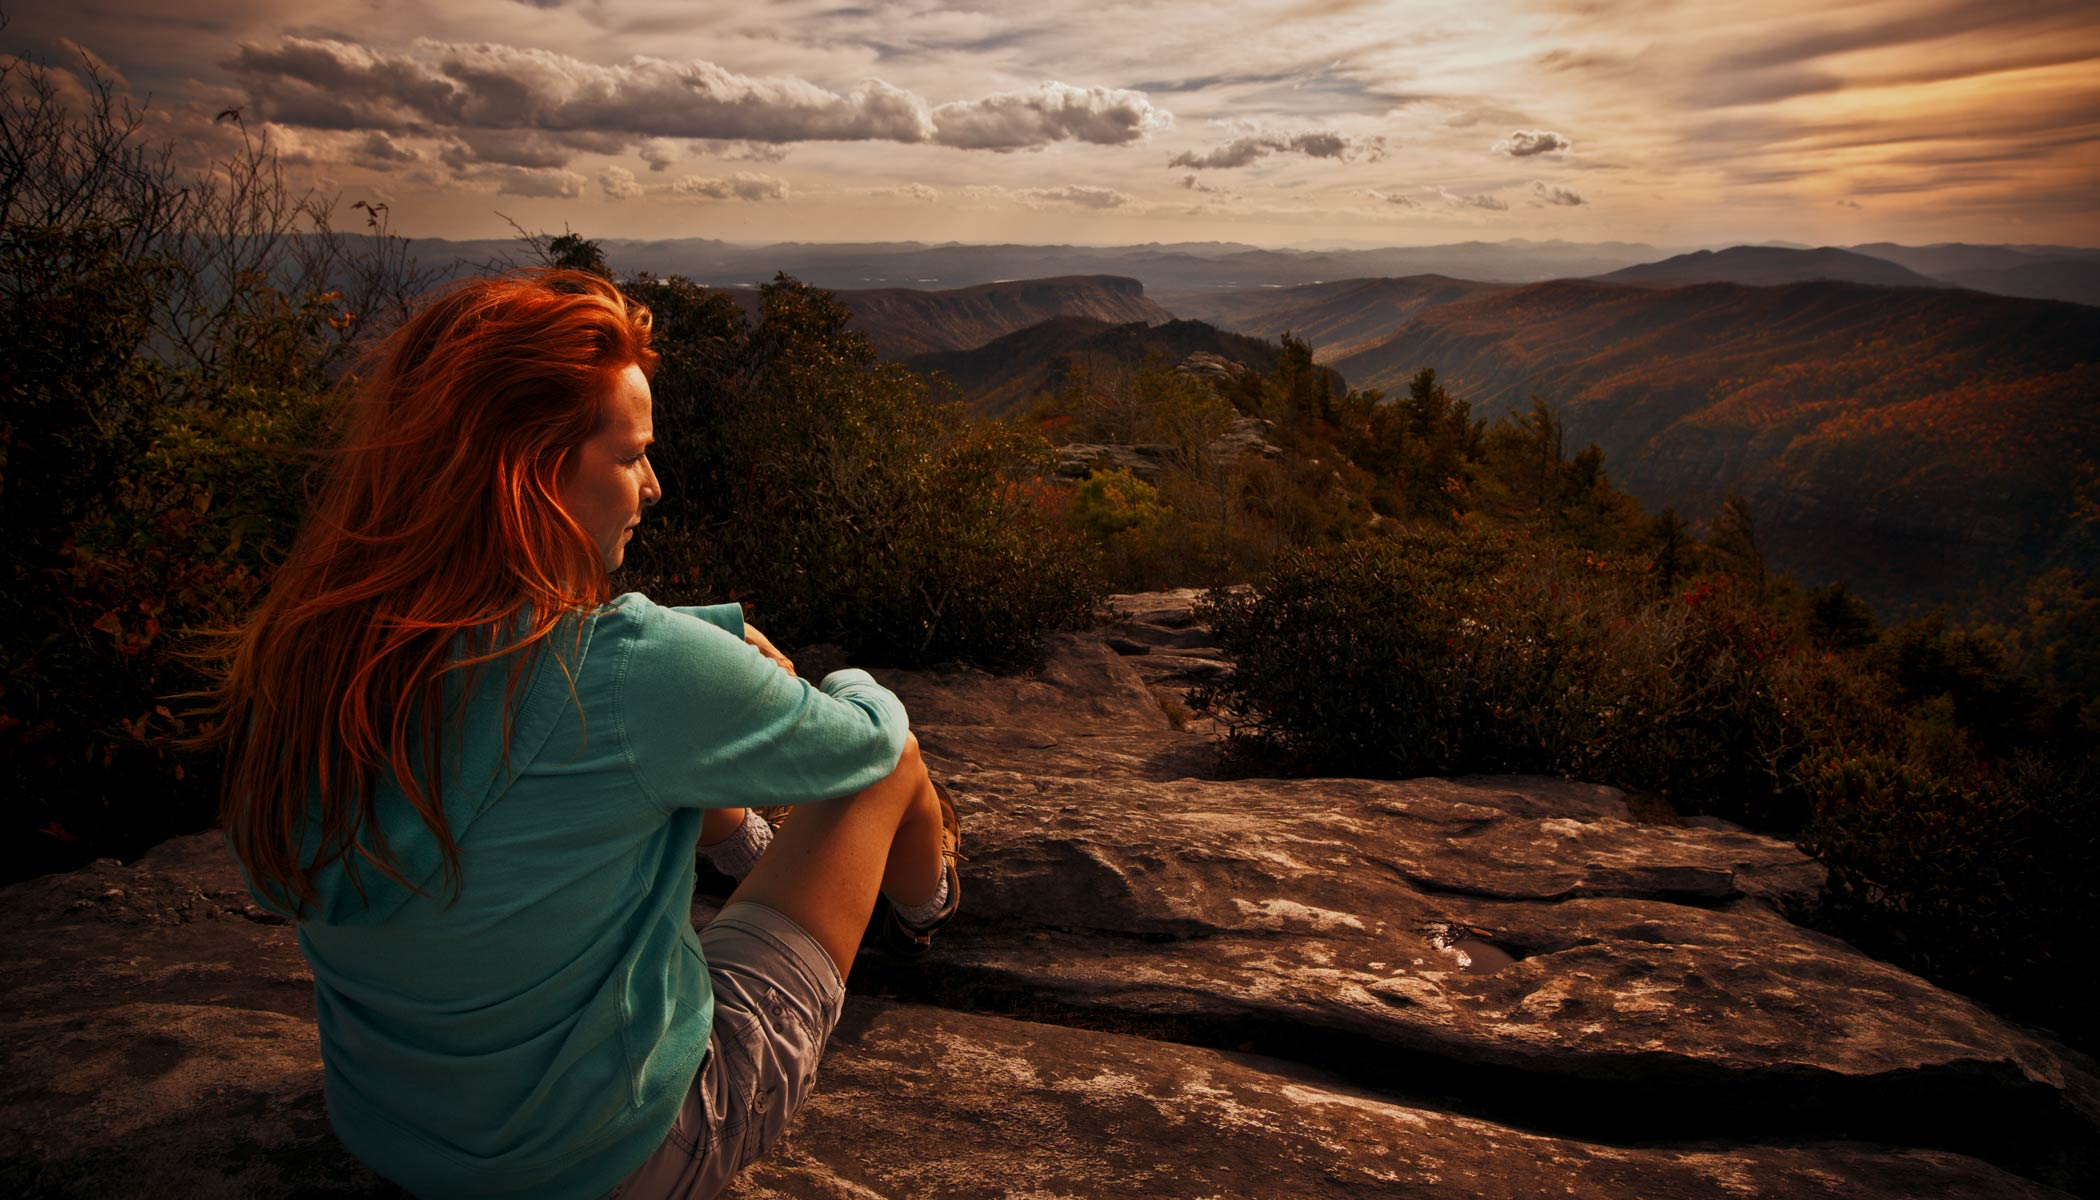 Woman Sitting On Rock In Mountains